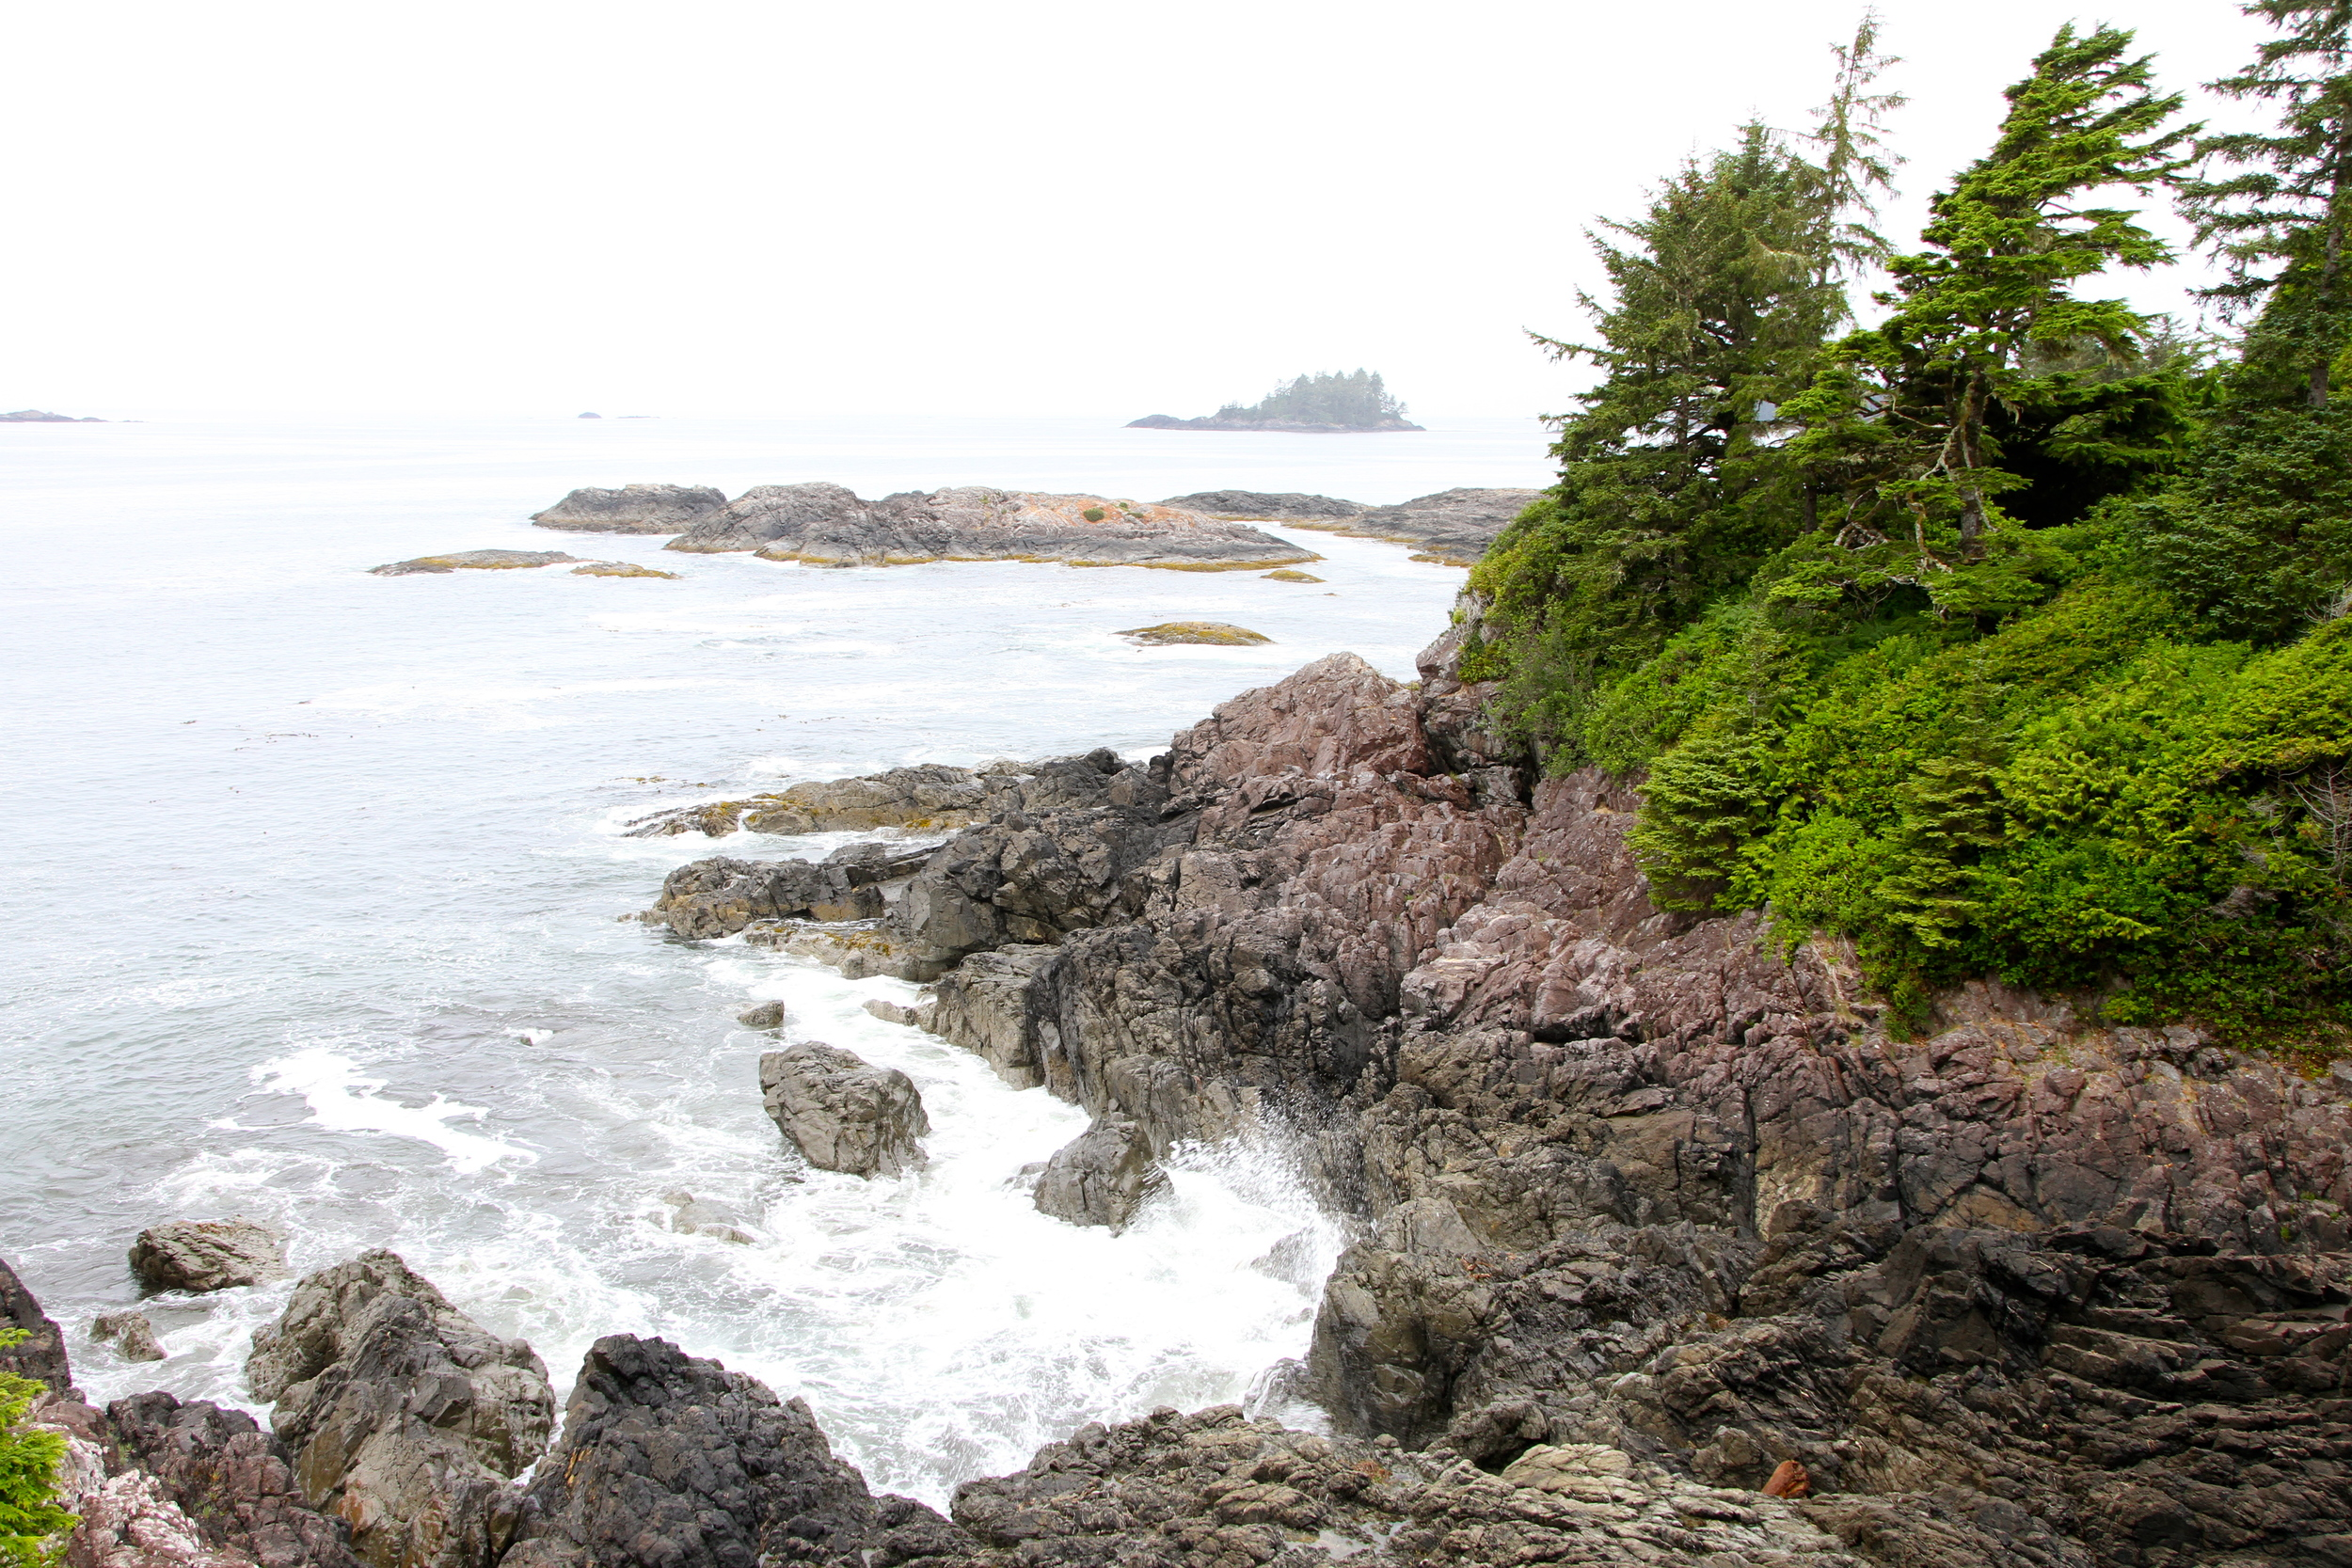 Room with a view. The Wickaninnish Inn, Tofino, BC, Canada.